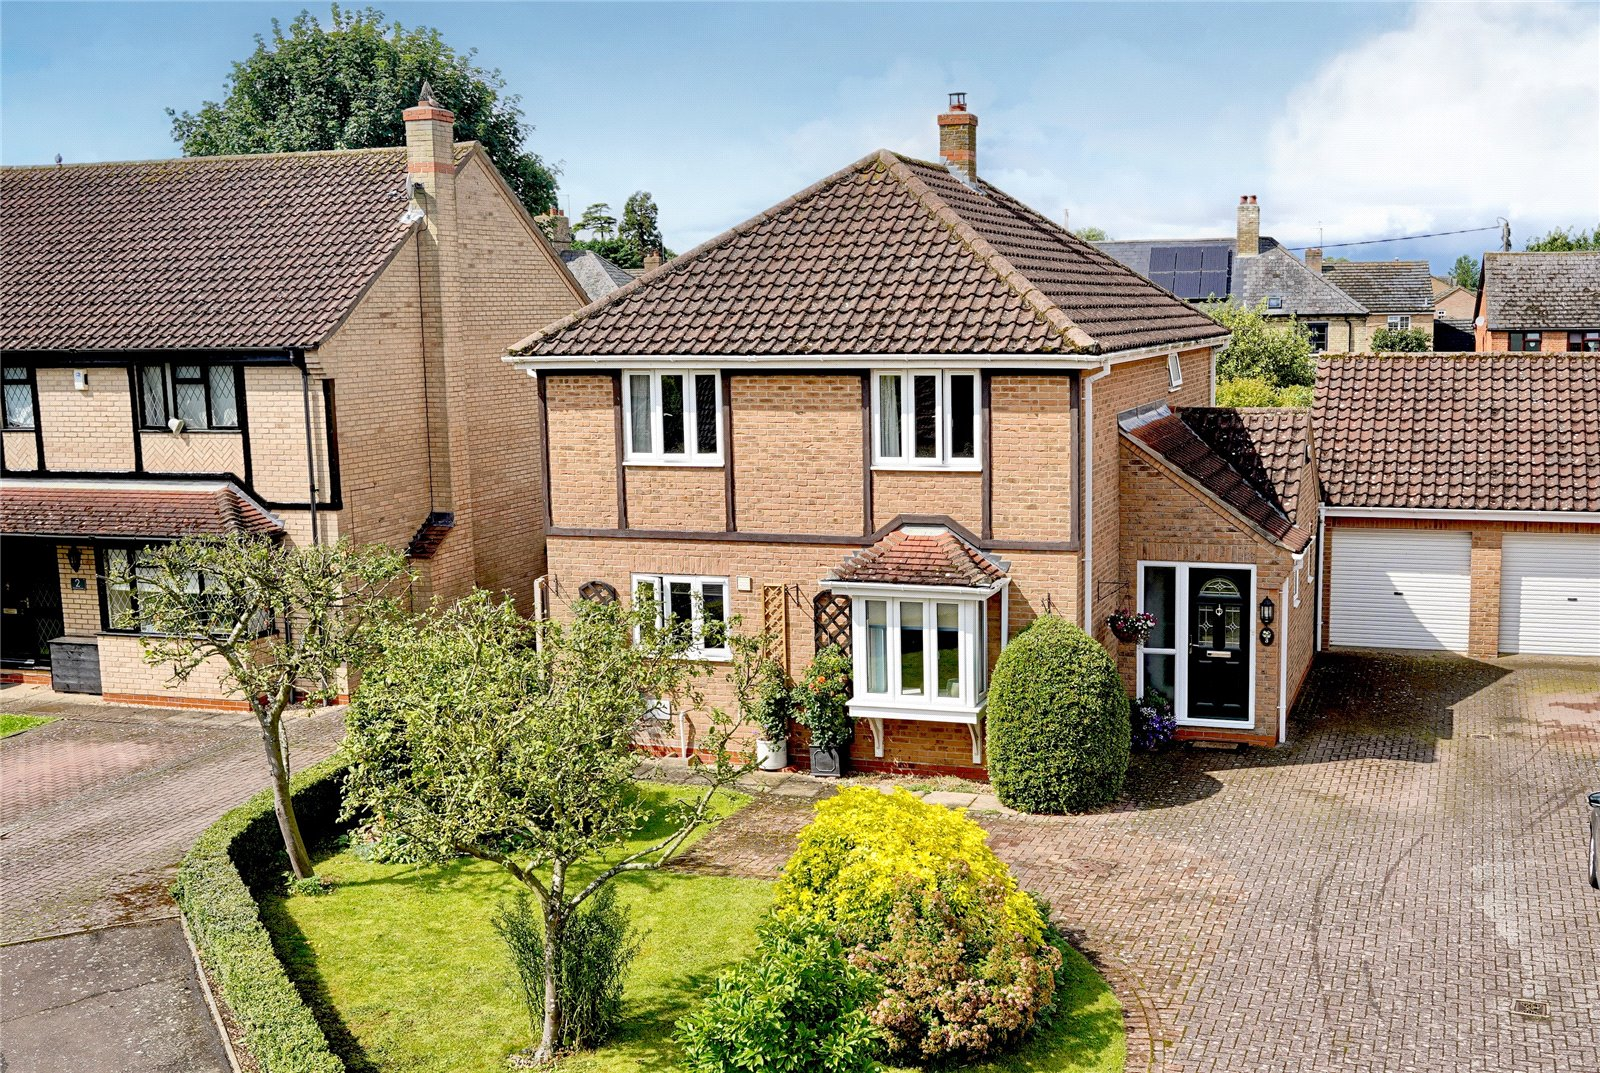 4 bed house for sale in Alsyke Close, Grafham  - Property Image 1